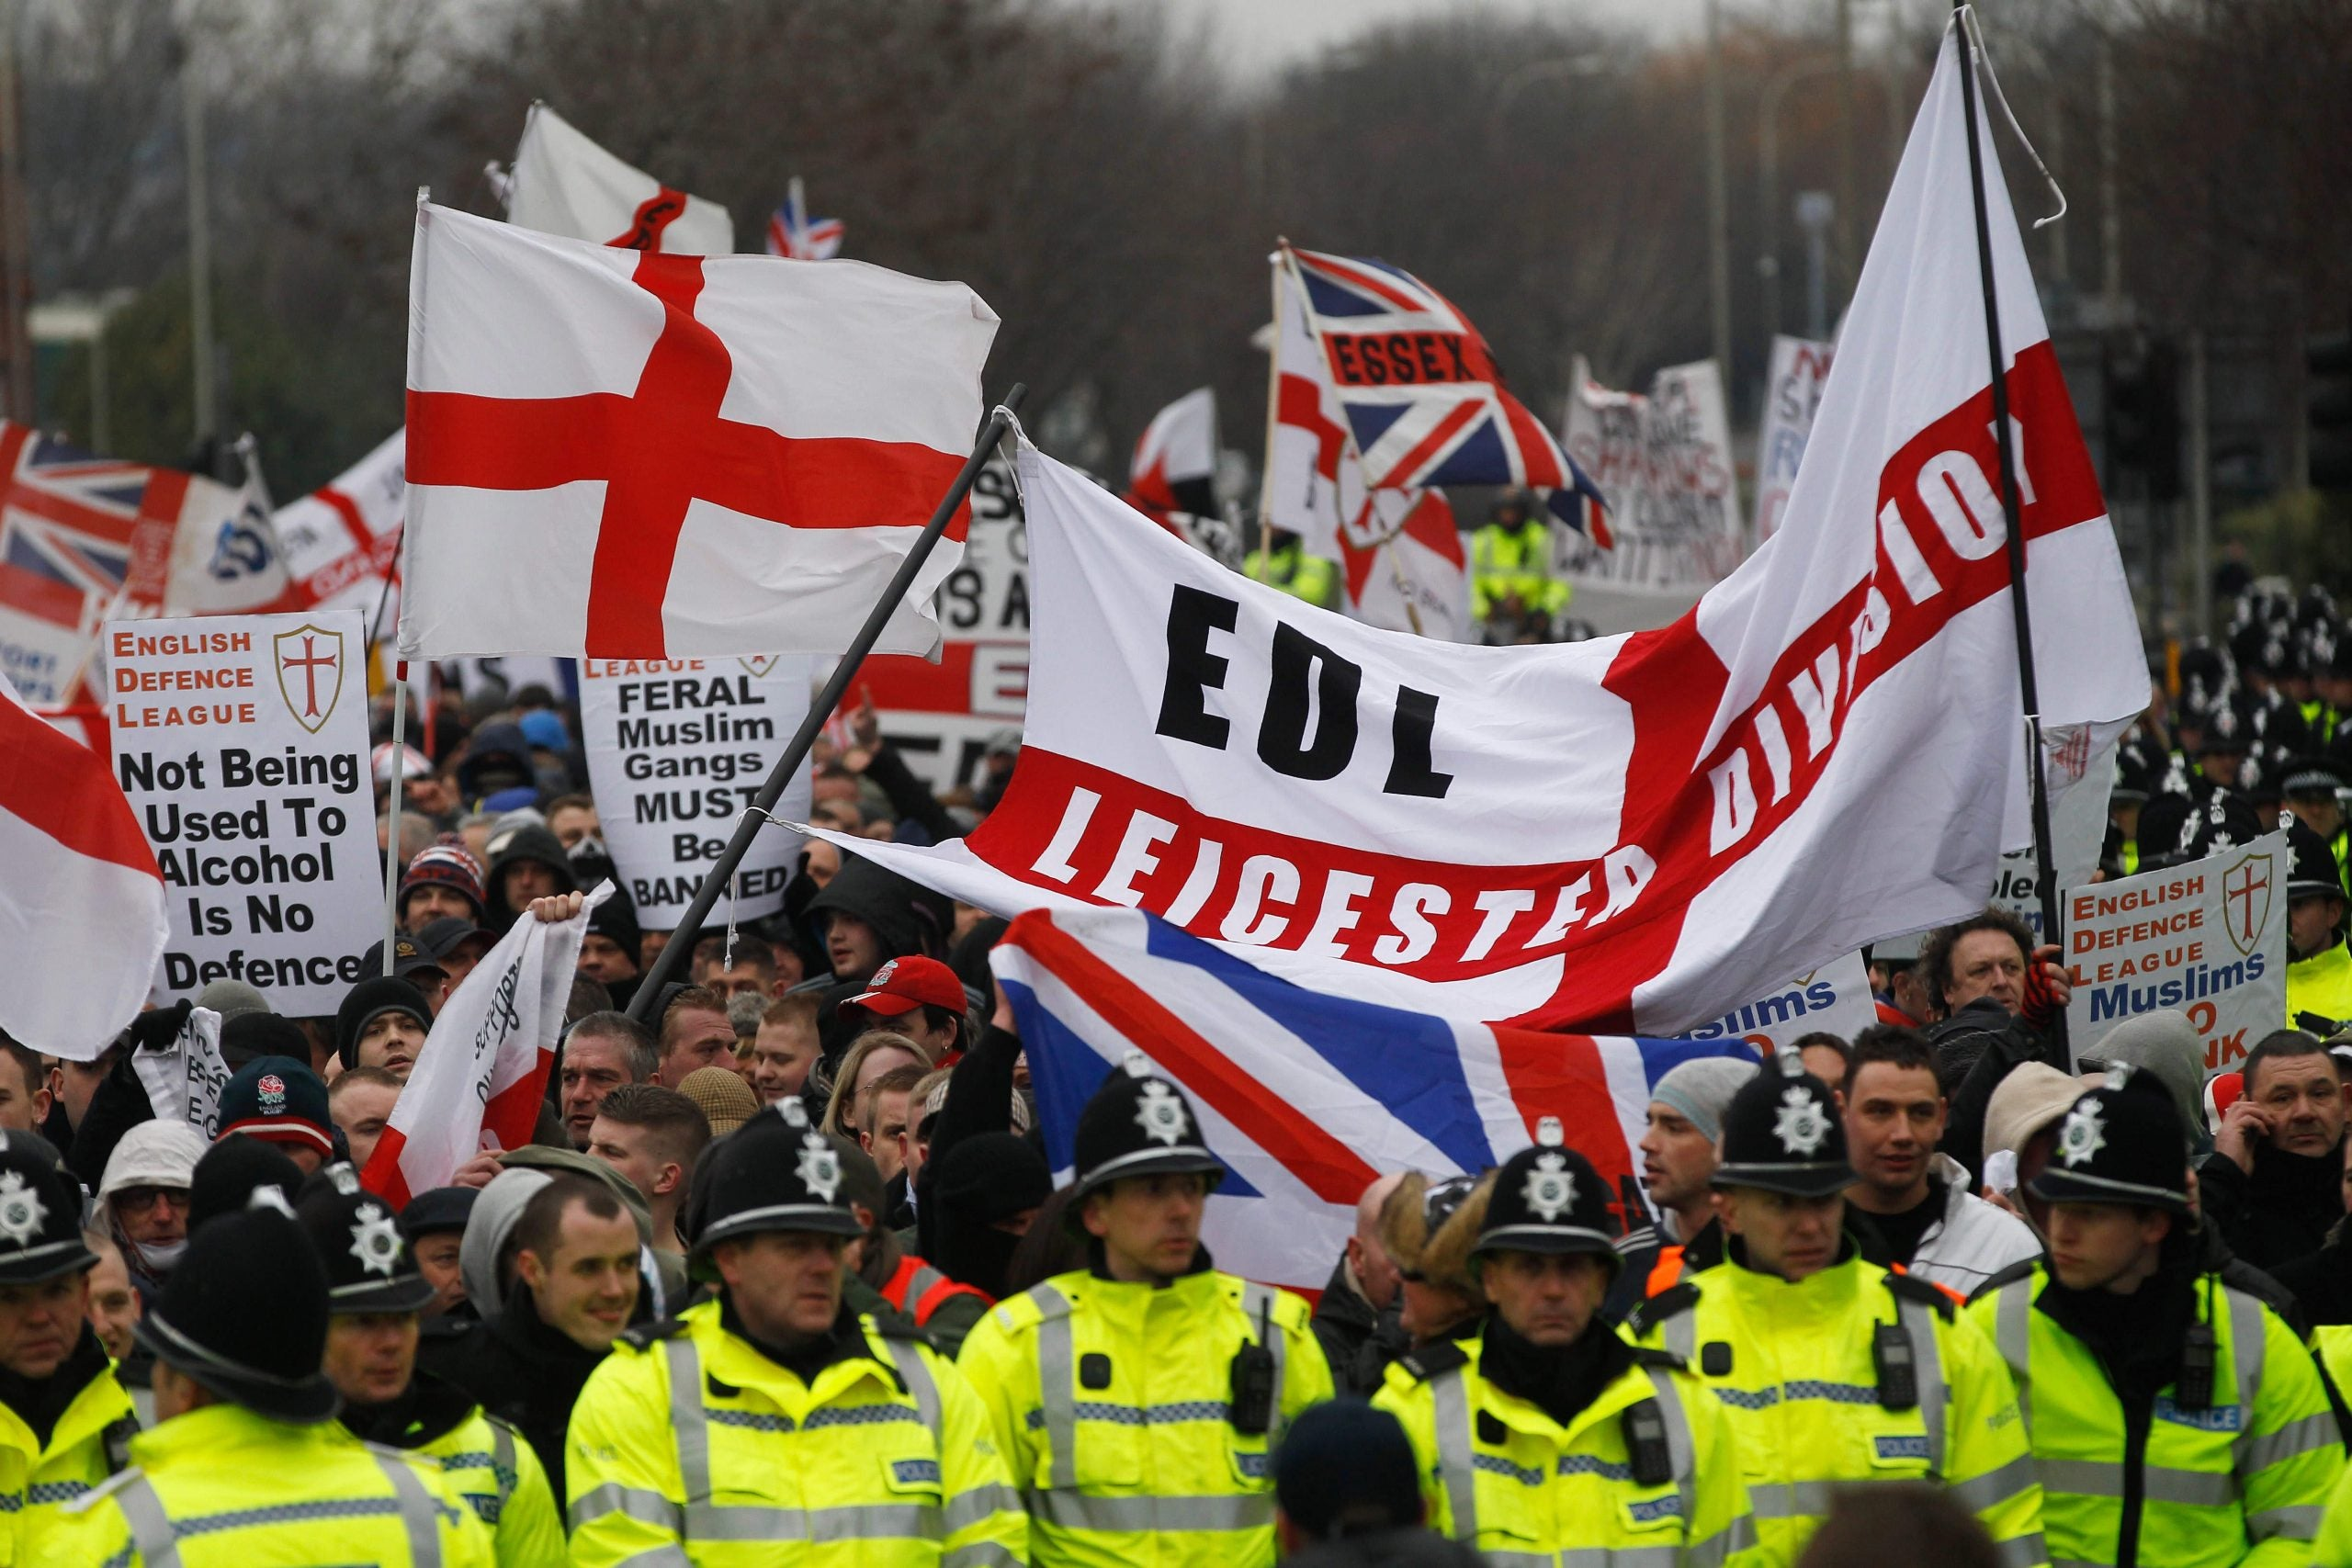 Why do white working class people turn to the far right?